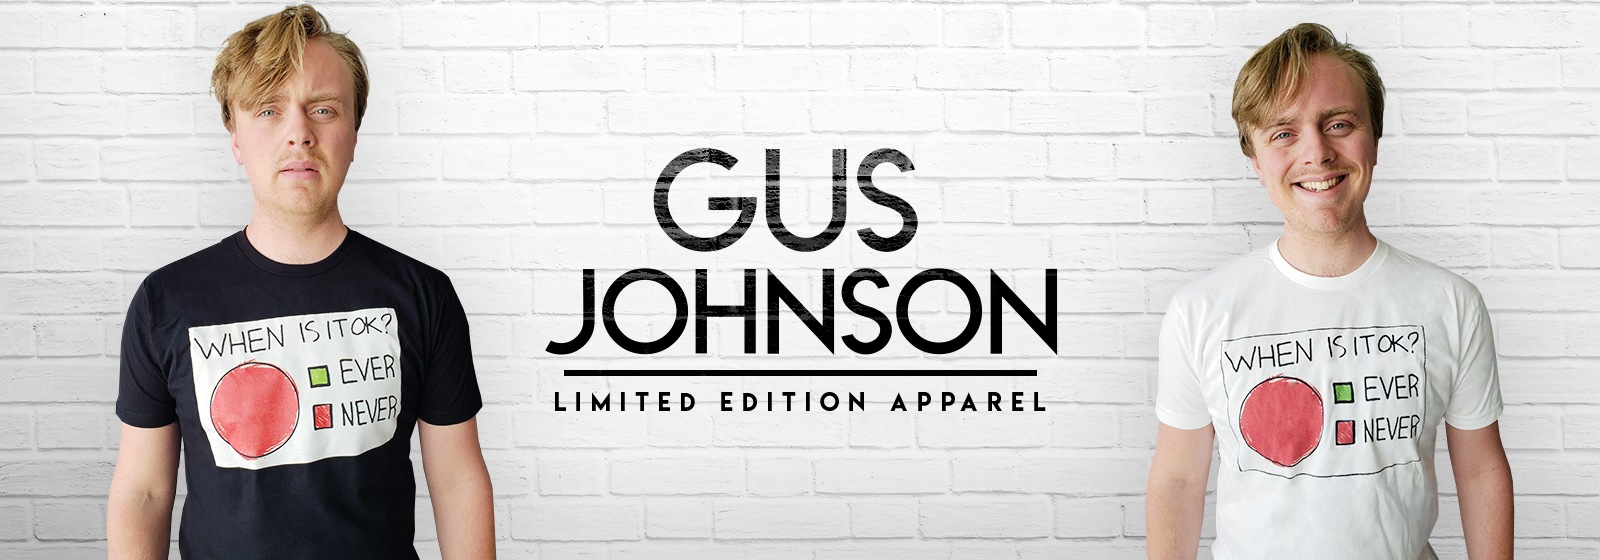 Gus Johnson's Store Store